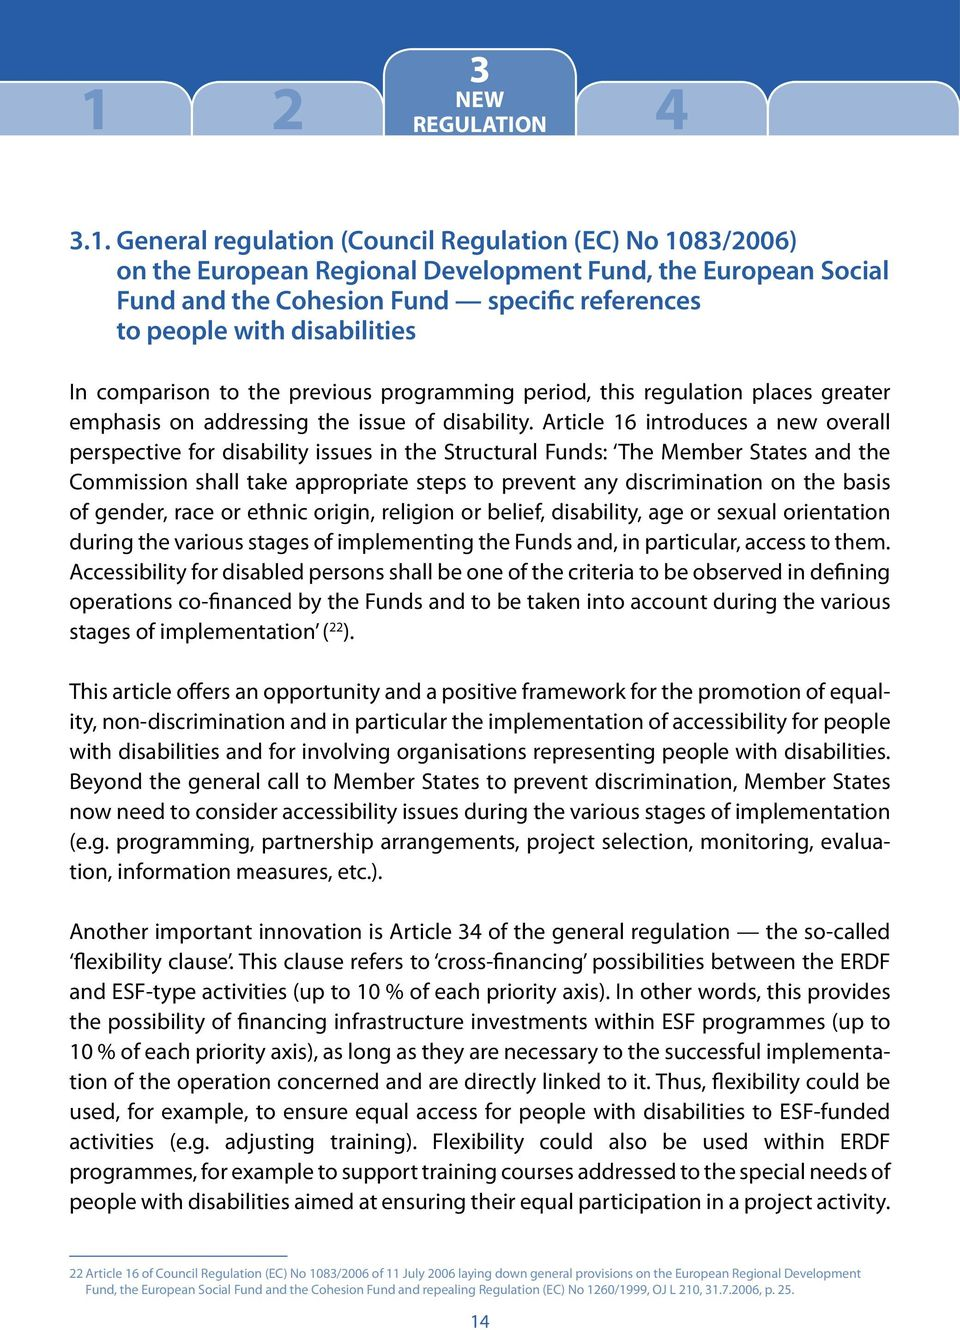 General regulation (Council Regulation (EC) No 1083/2006) on the European Regional Development Fund, the European Social Fund and the Cohesion Fund specific references to people with disabilities In